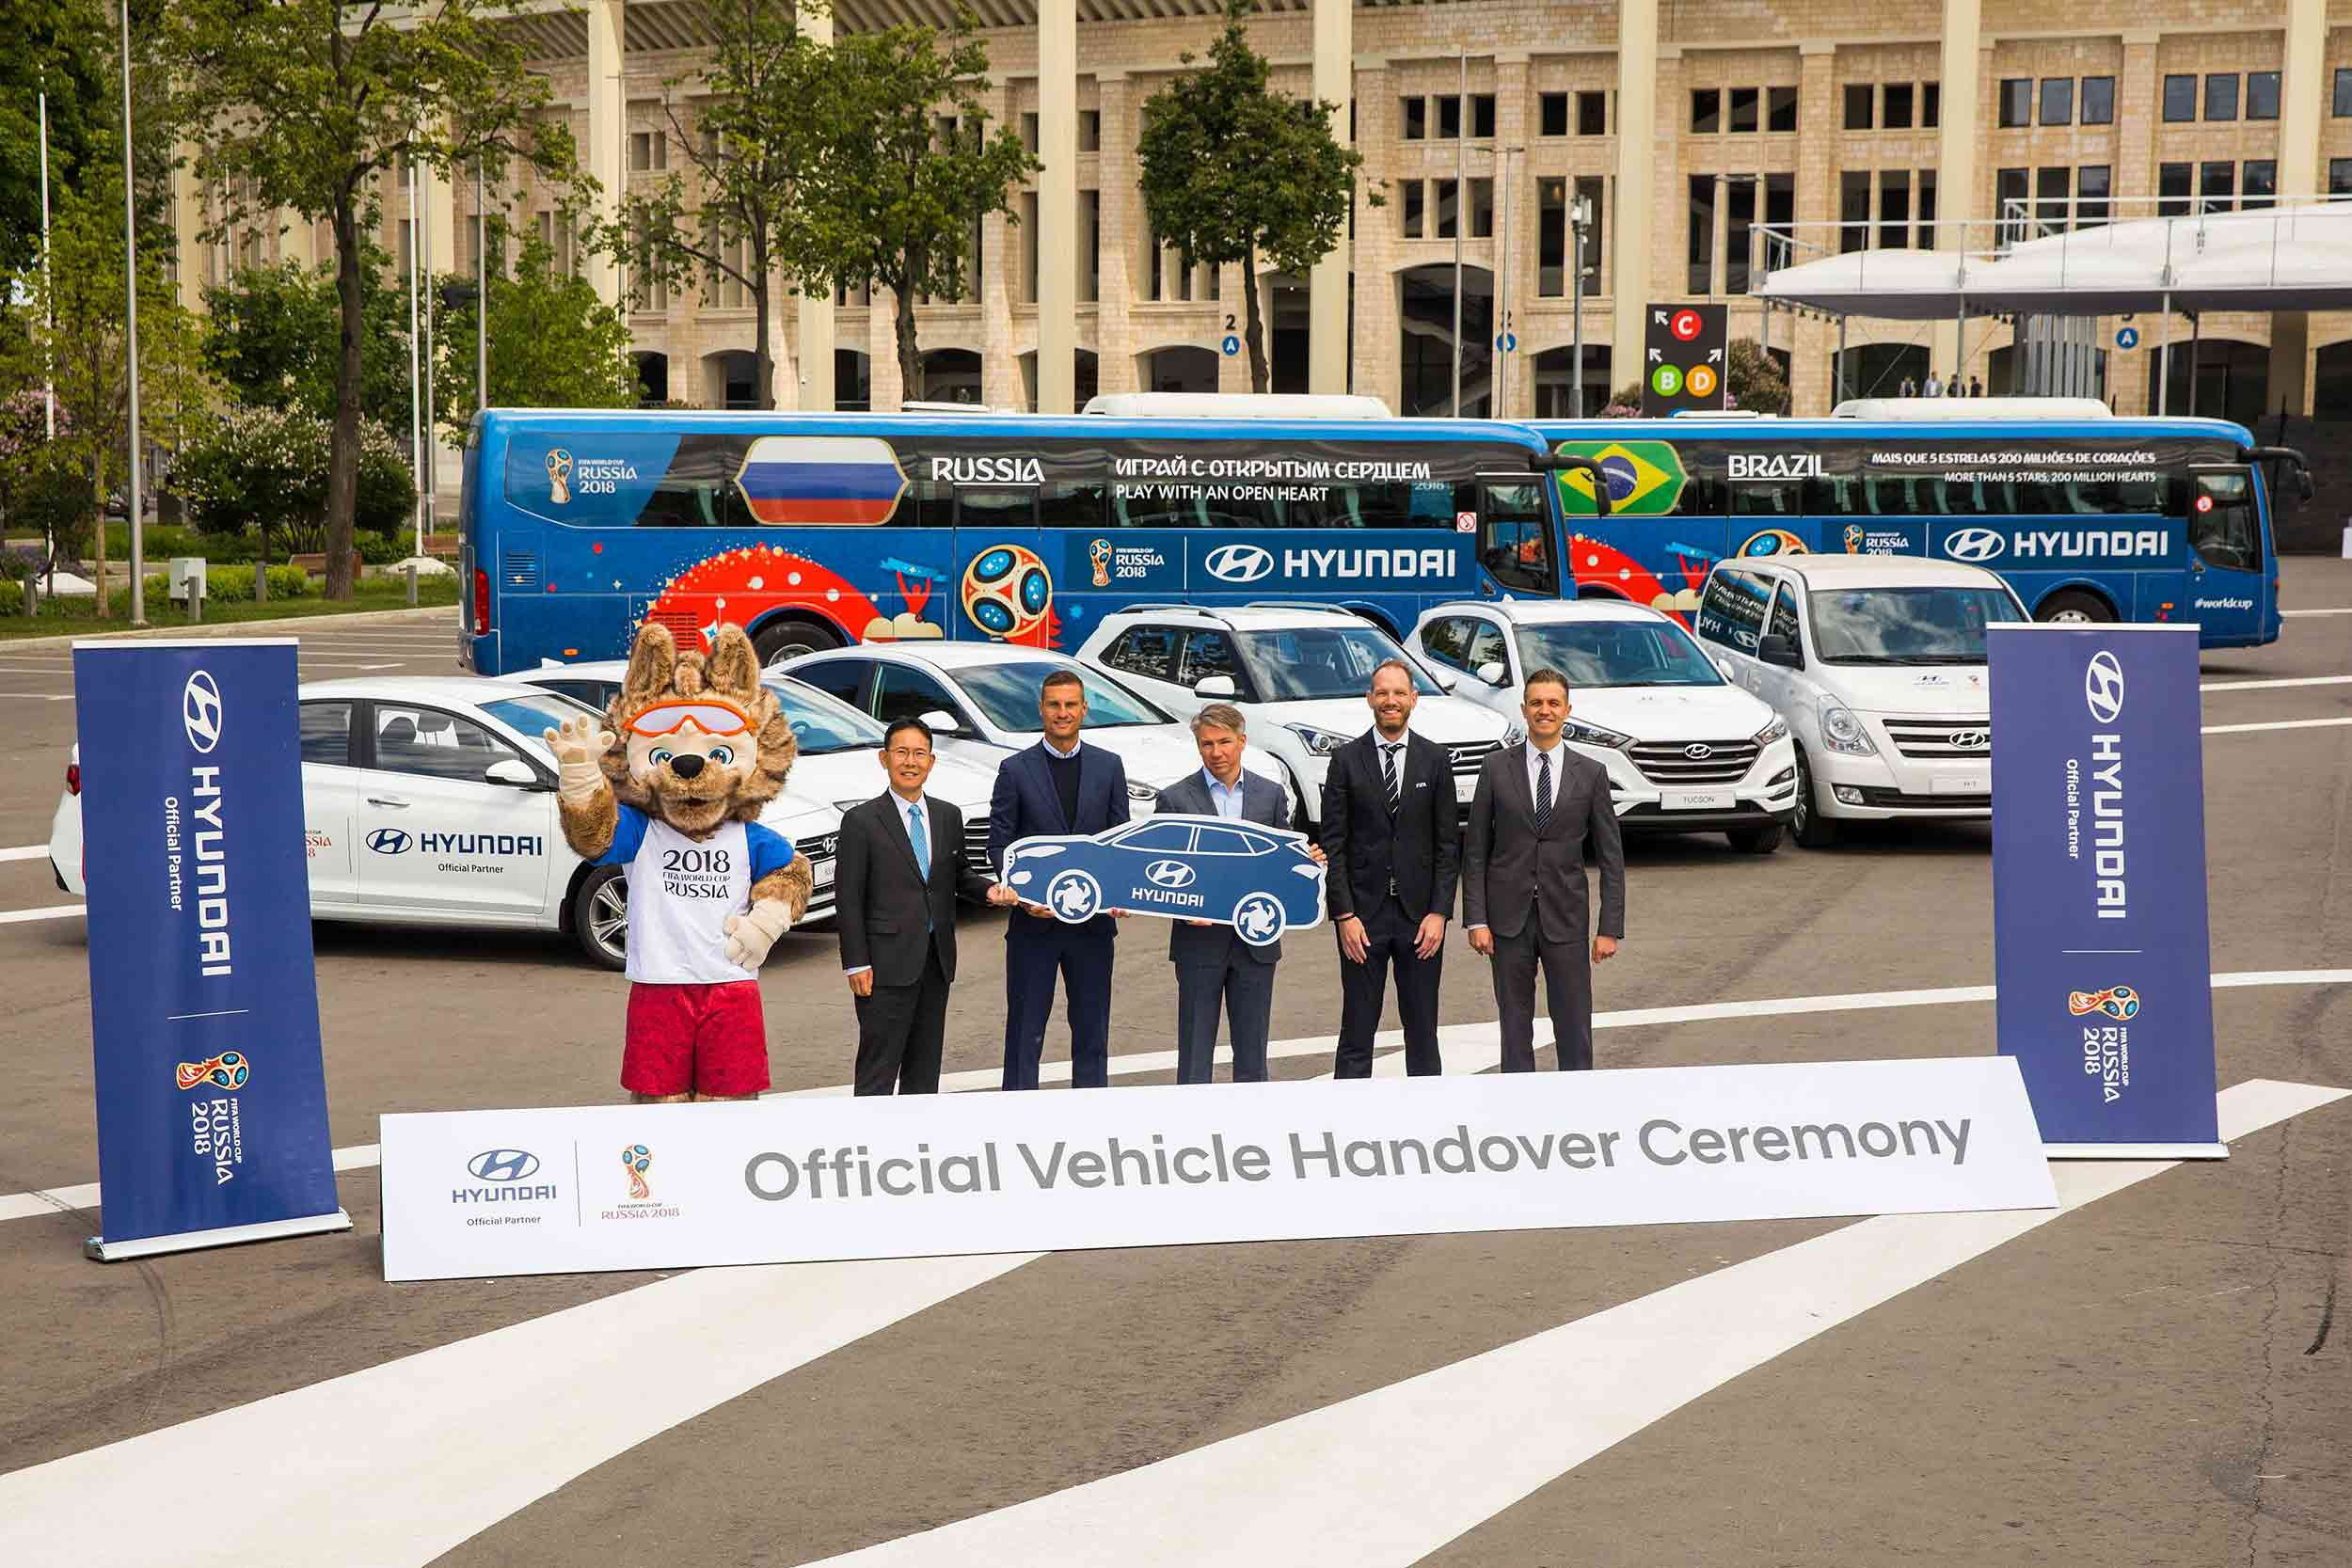 FIFA World Cup 2018 will use 530 Hyundai cars